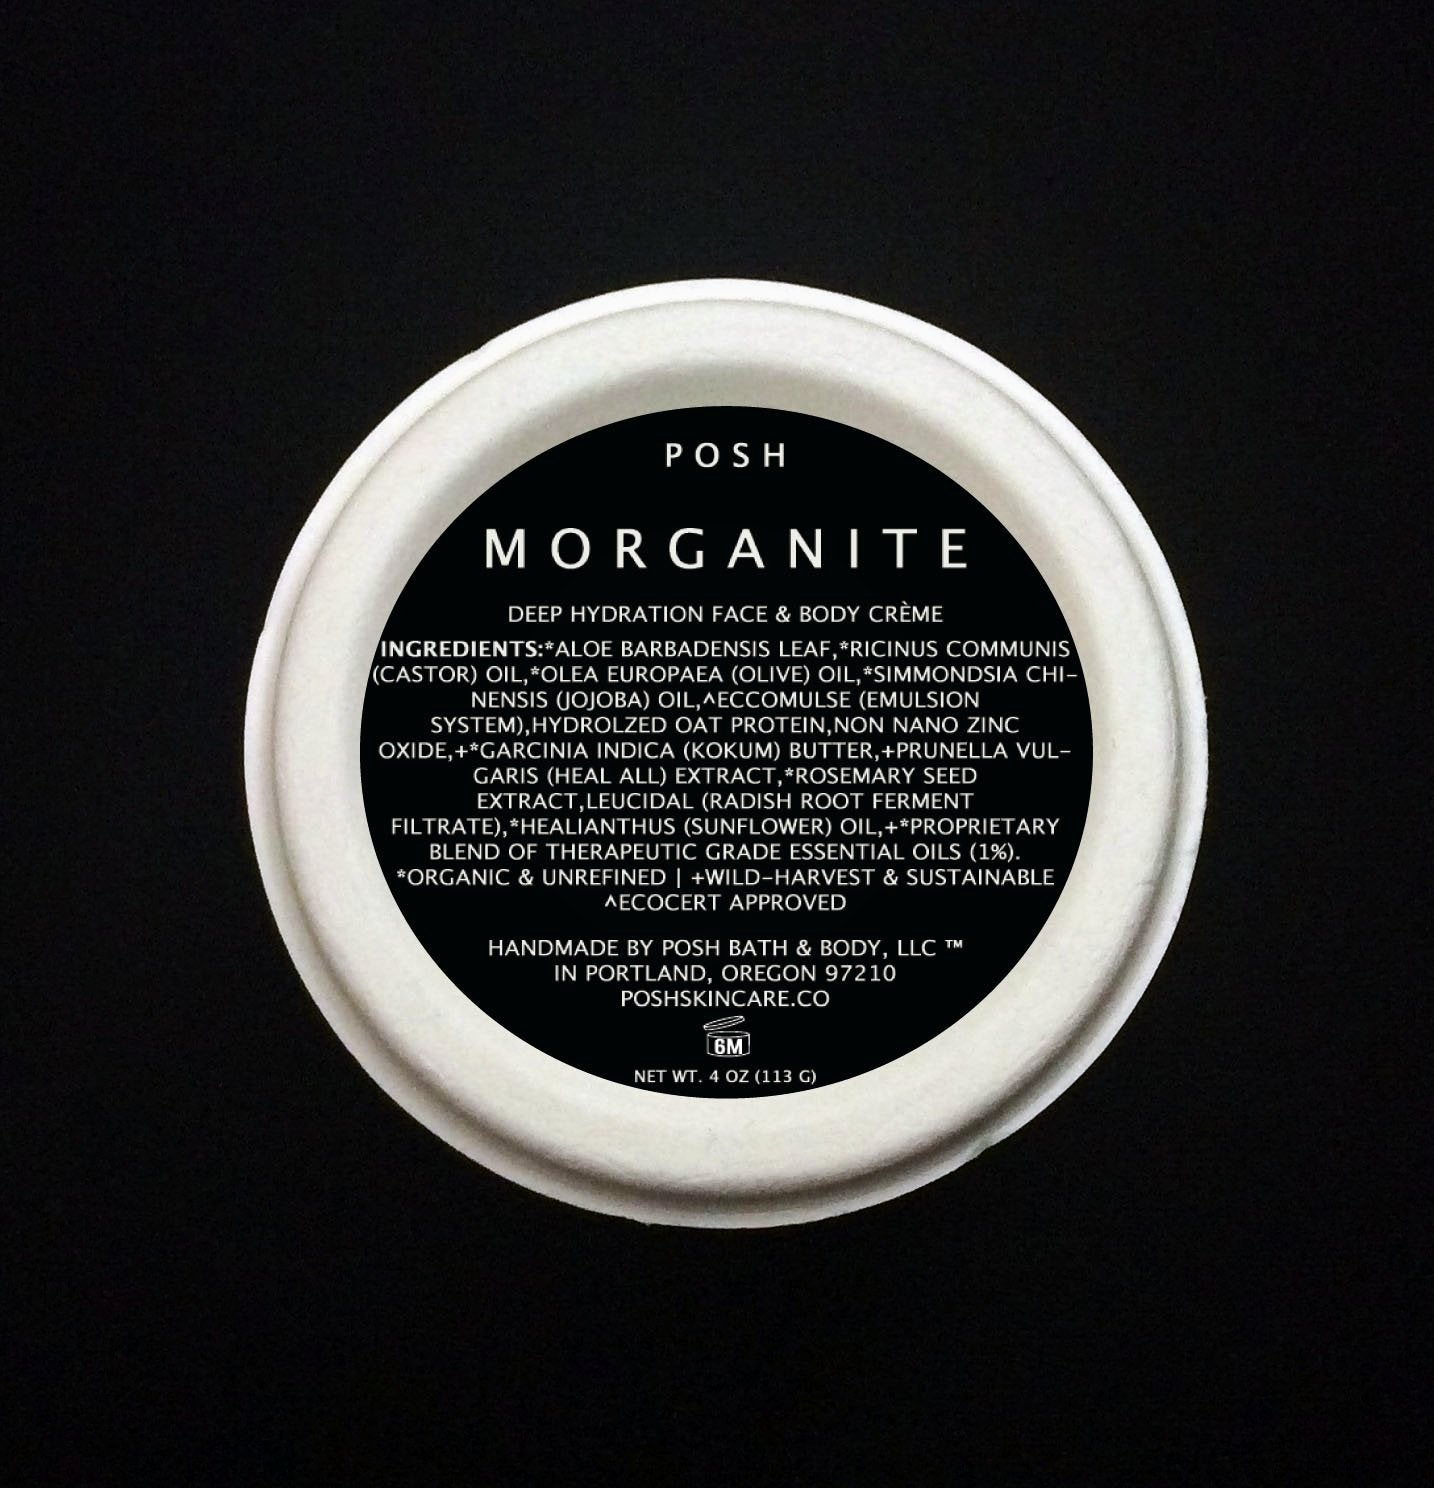 MORGANITE Face & Body Creme//All Types of Skin//Meditate Aroma